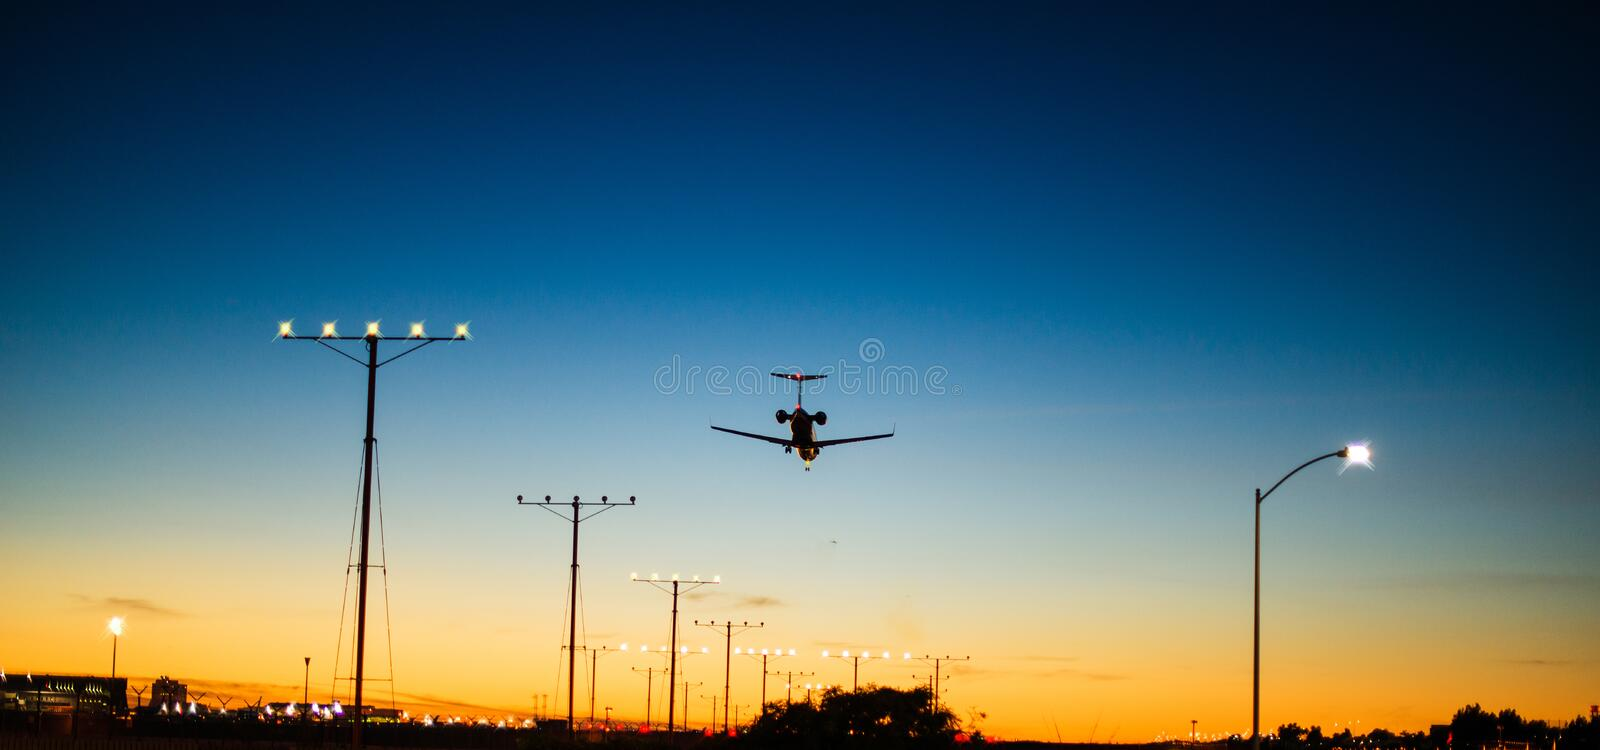 Airplane landing during dawn just before sunrise stock images